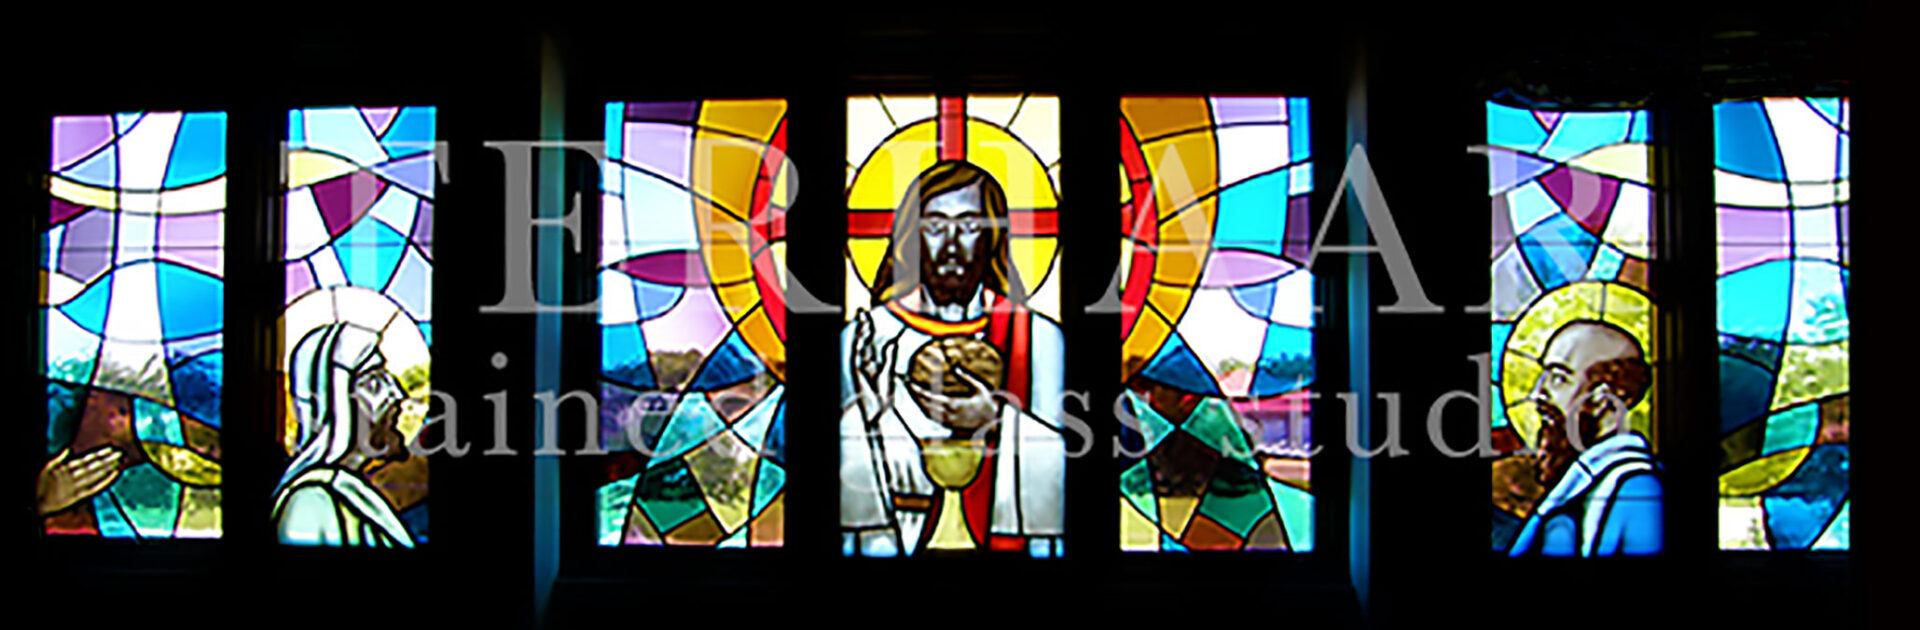 stained-glass-art_jesus-breaking-bread_stained-glass-windows_house-of-worship_terhaarglass.com